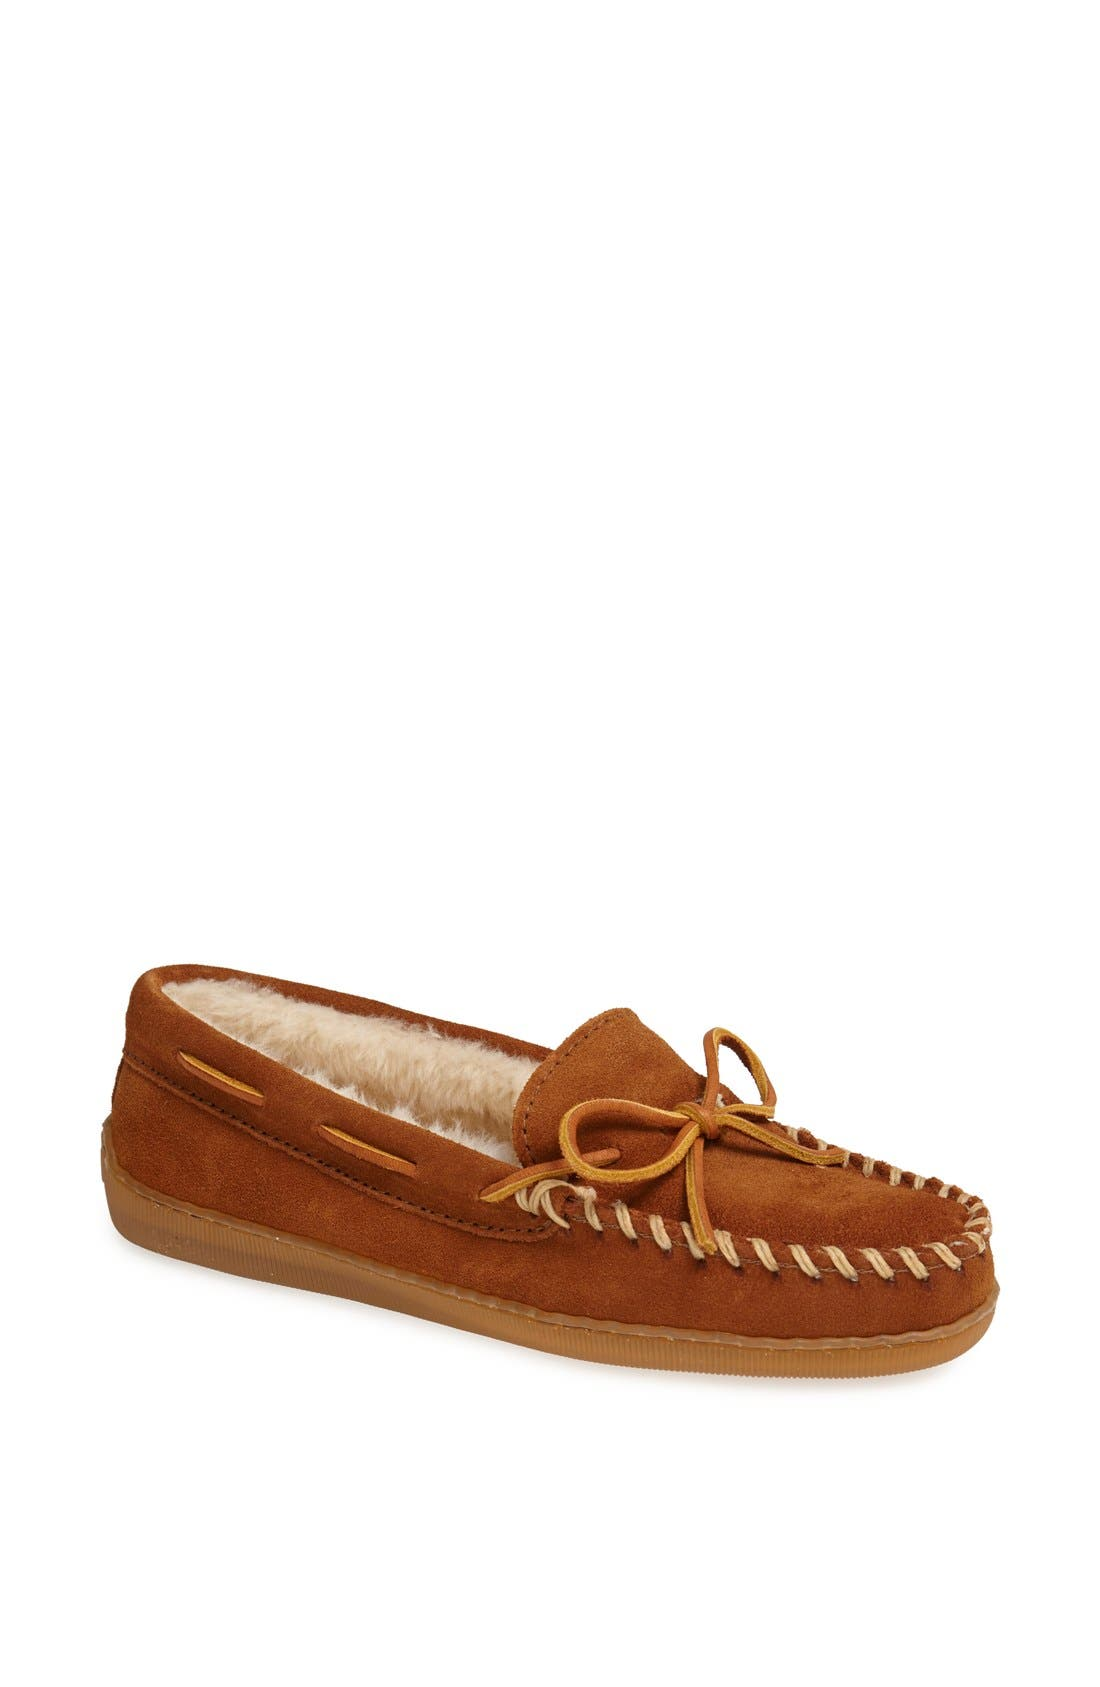 Moccasin Slipper,                             Main thumbnail 1, color,                             BROWN